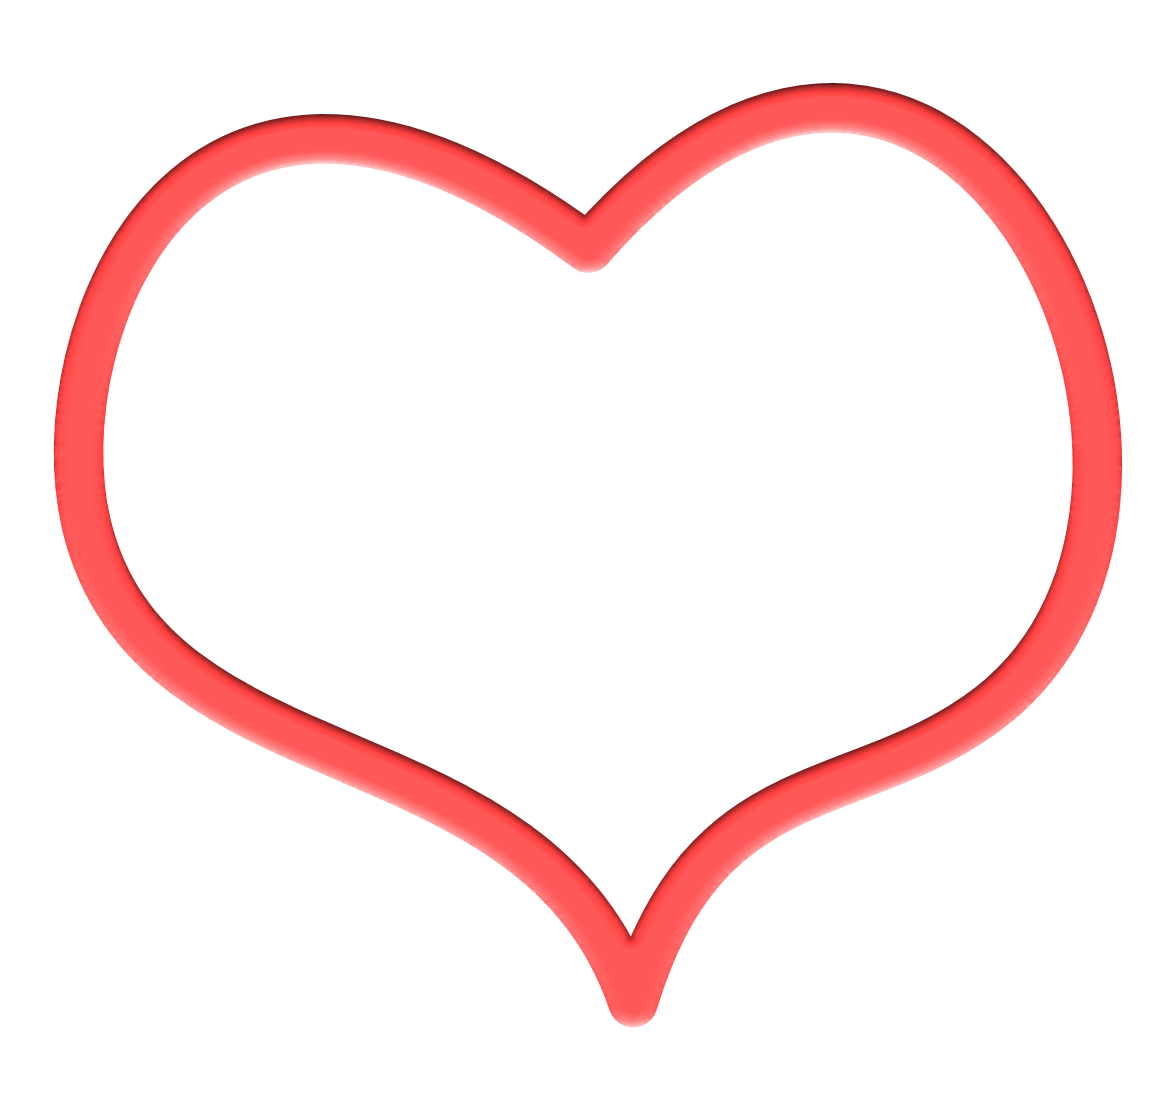 Outline of a heart free download best outline of a heart on 1150x1100 heart outline outline of a heart symbol clipart biocorpaavc Gallery